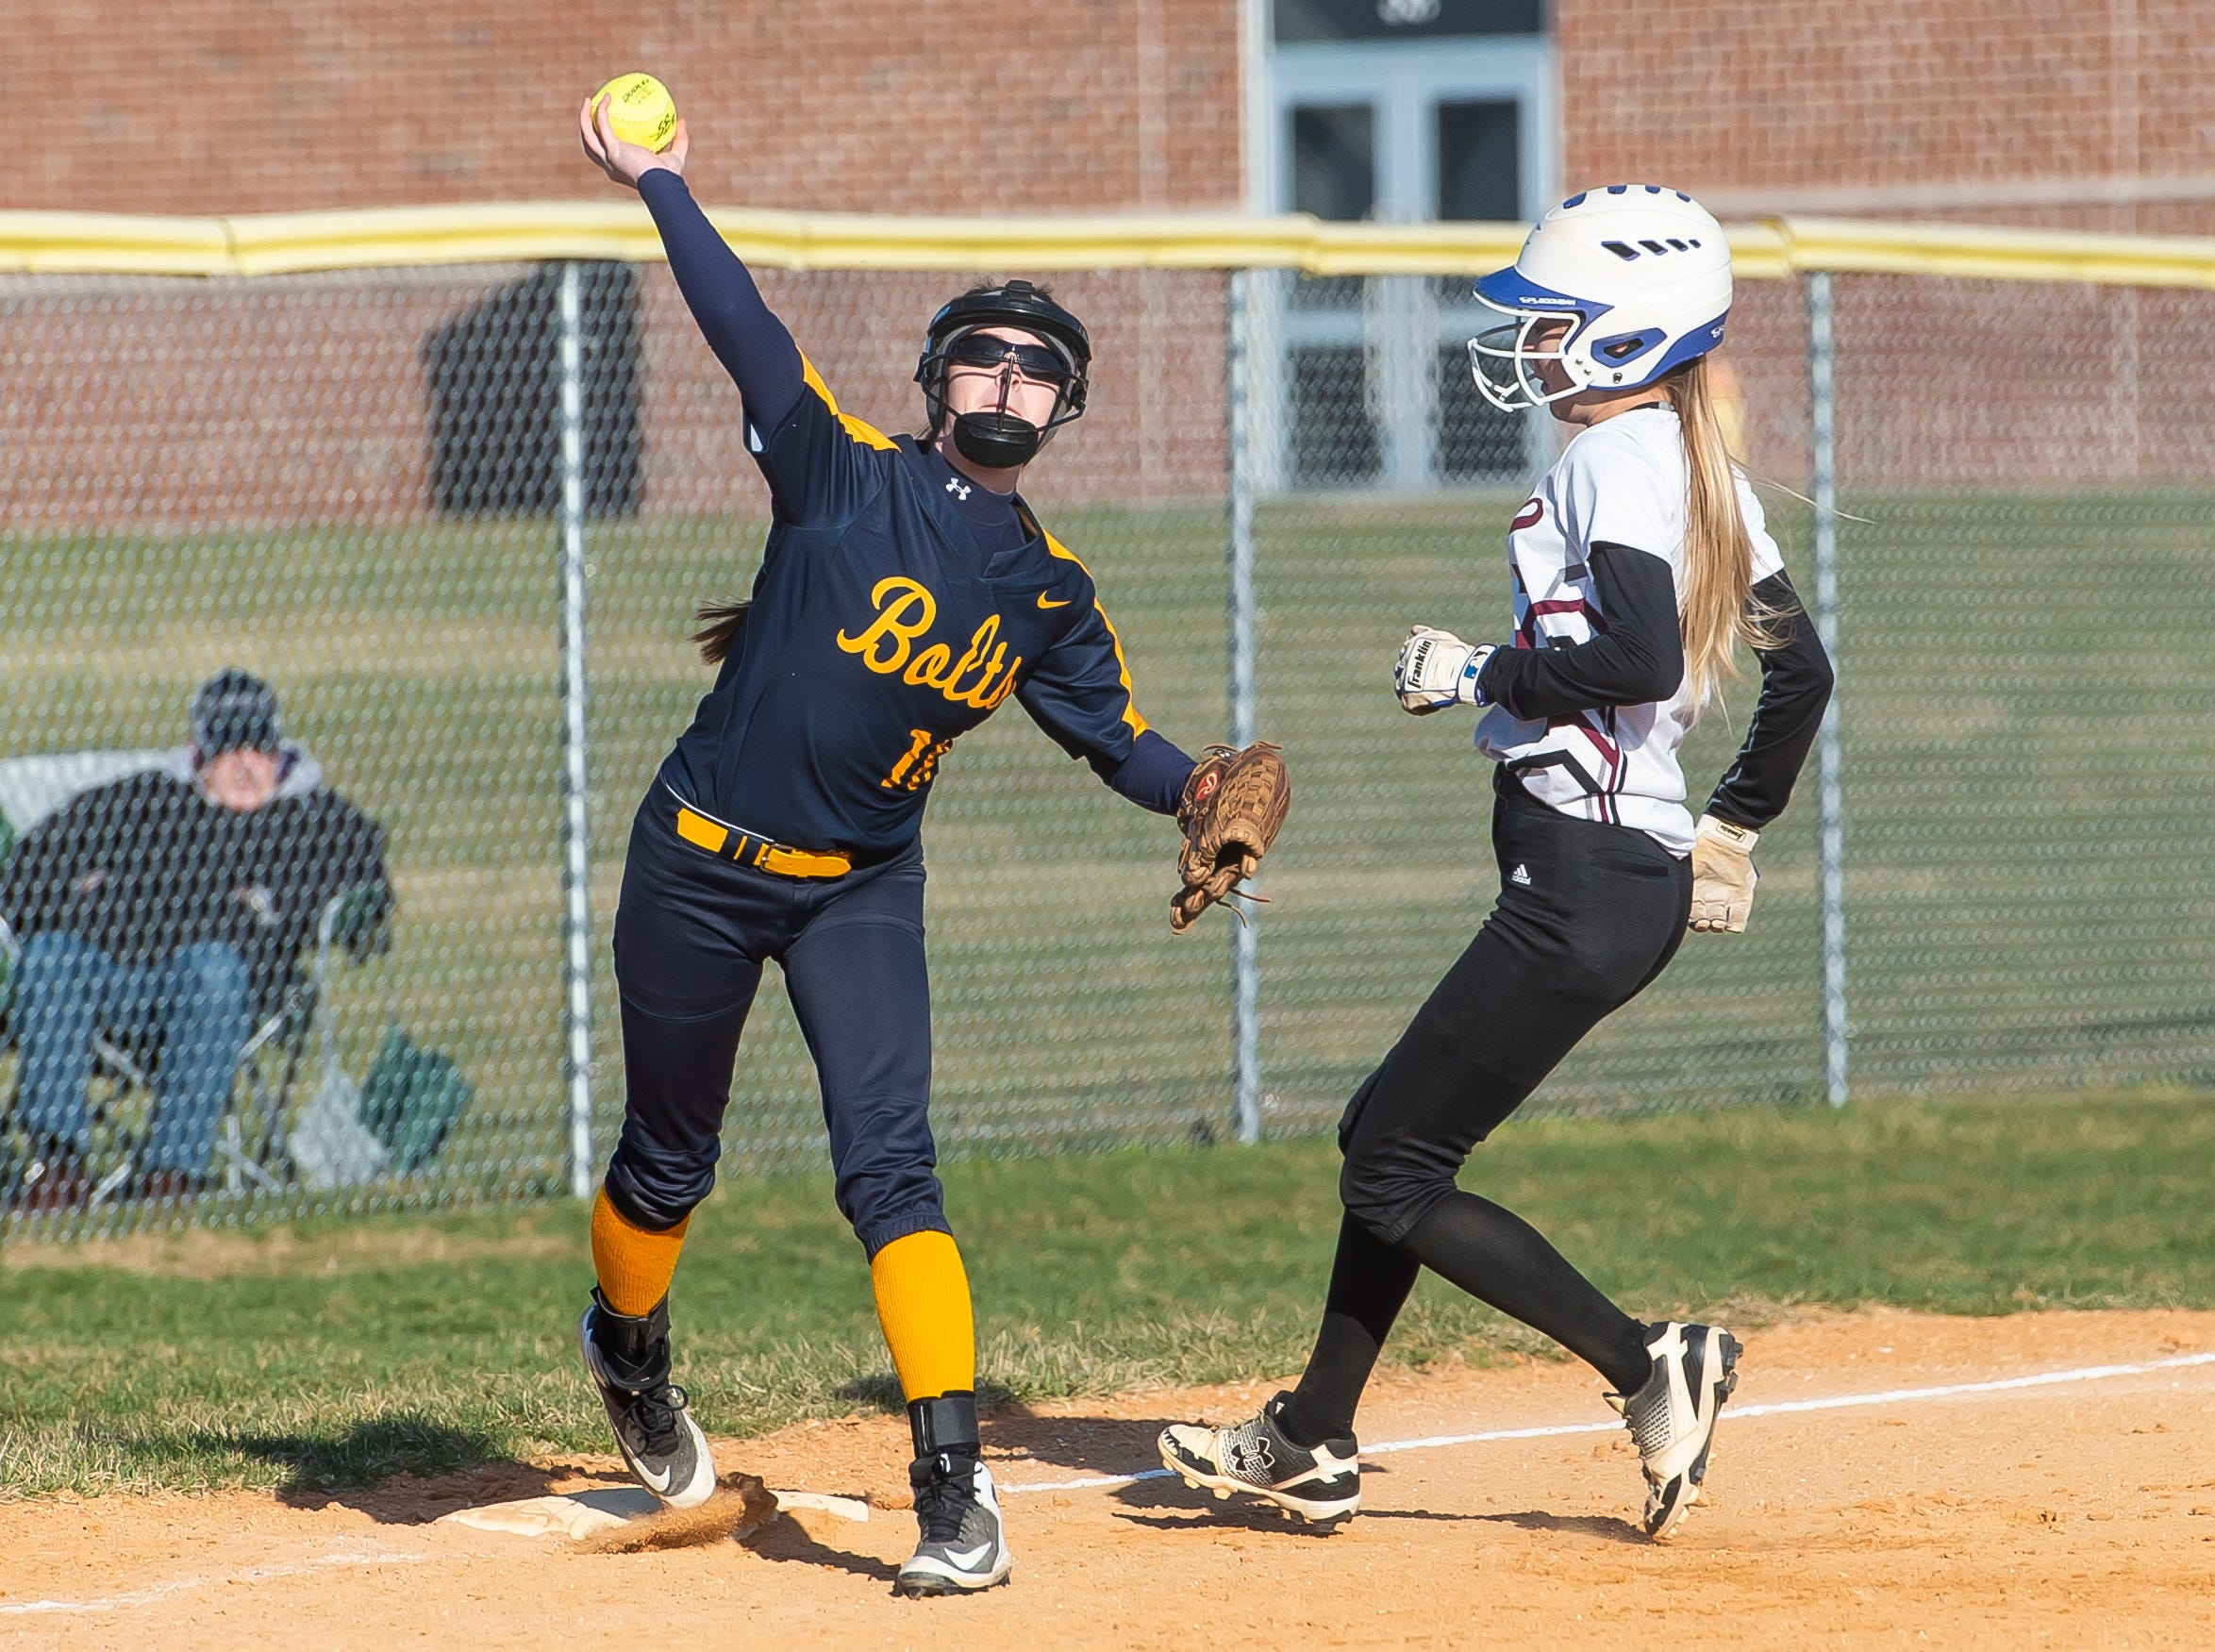 Littlestown third baseman Jada Mummert throws the ball to first after fielding a ground ball and getting the force out at third in a YAIAA softball game against Gettysburg on Monday, April 1, 2019. The Bolts won 10-4.